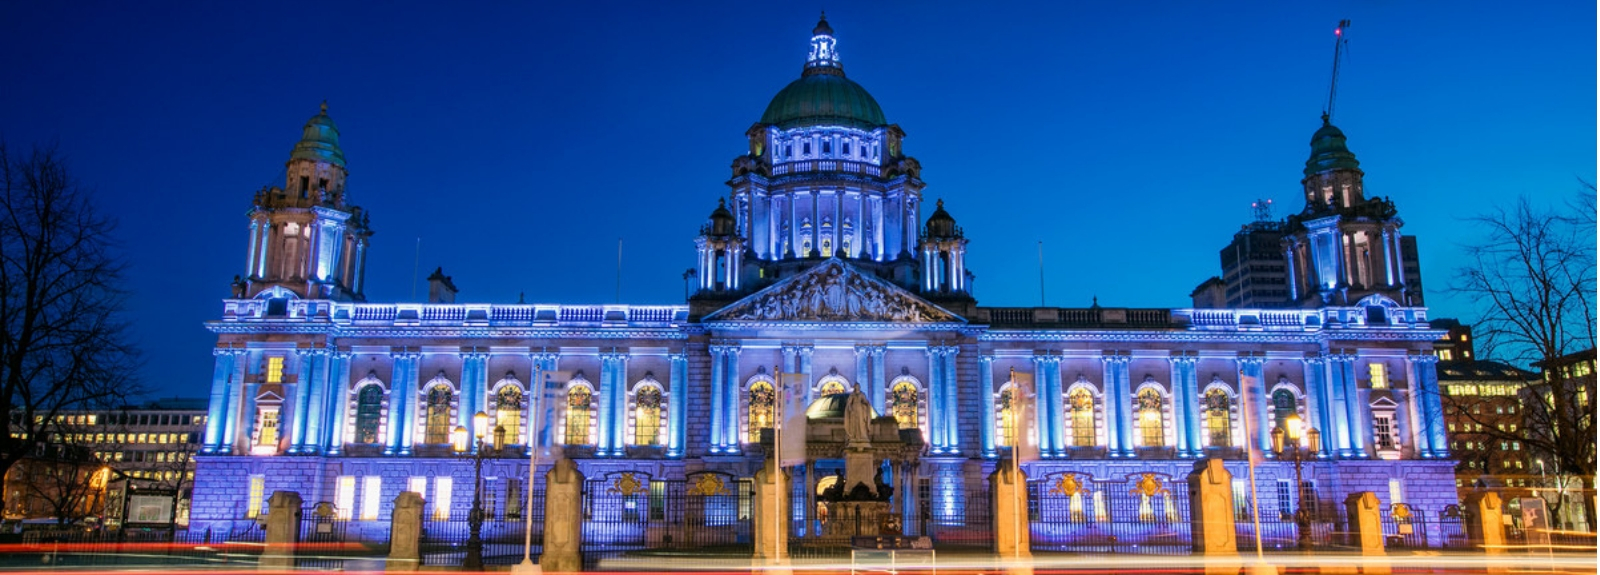 1600x575 city hall at night blue